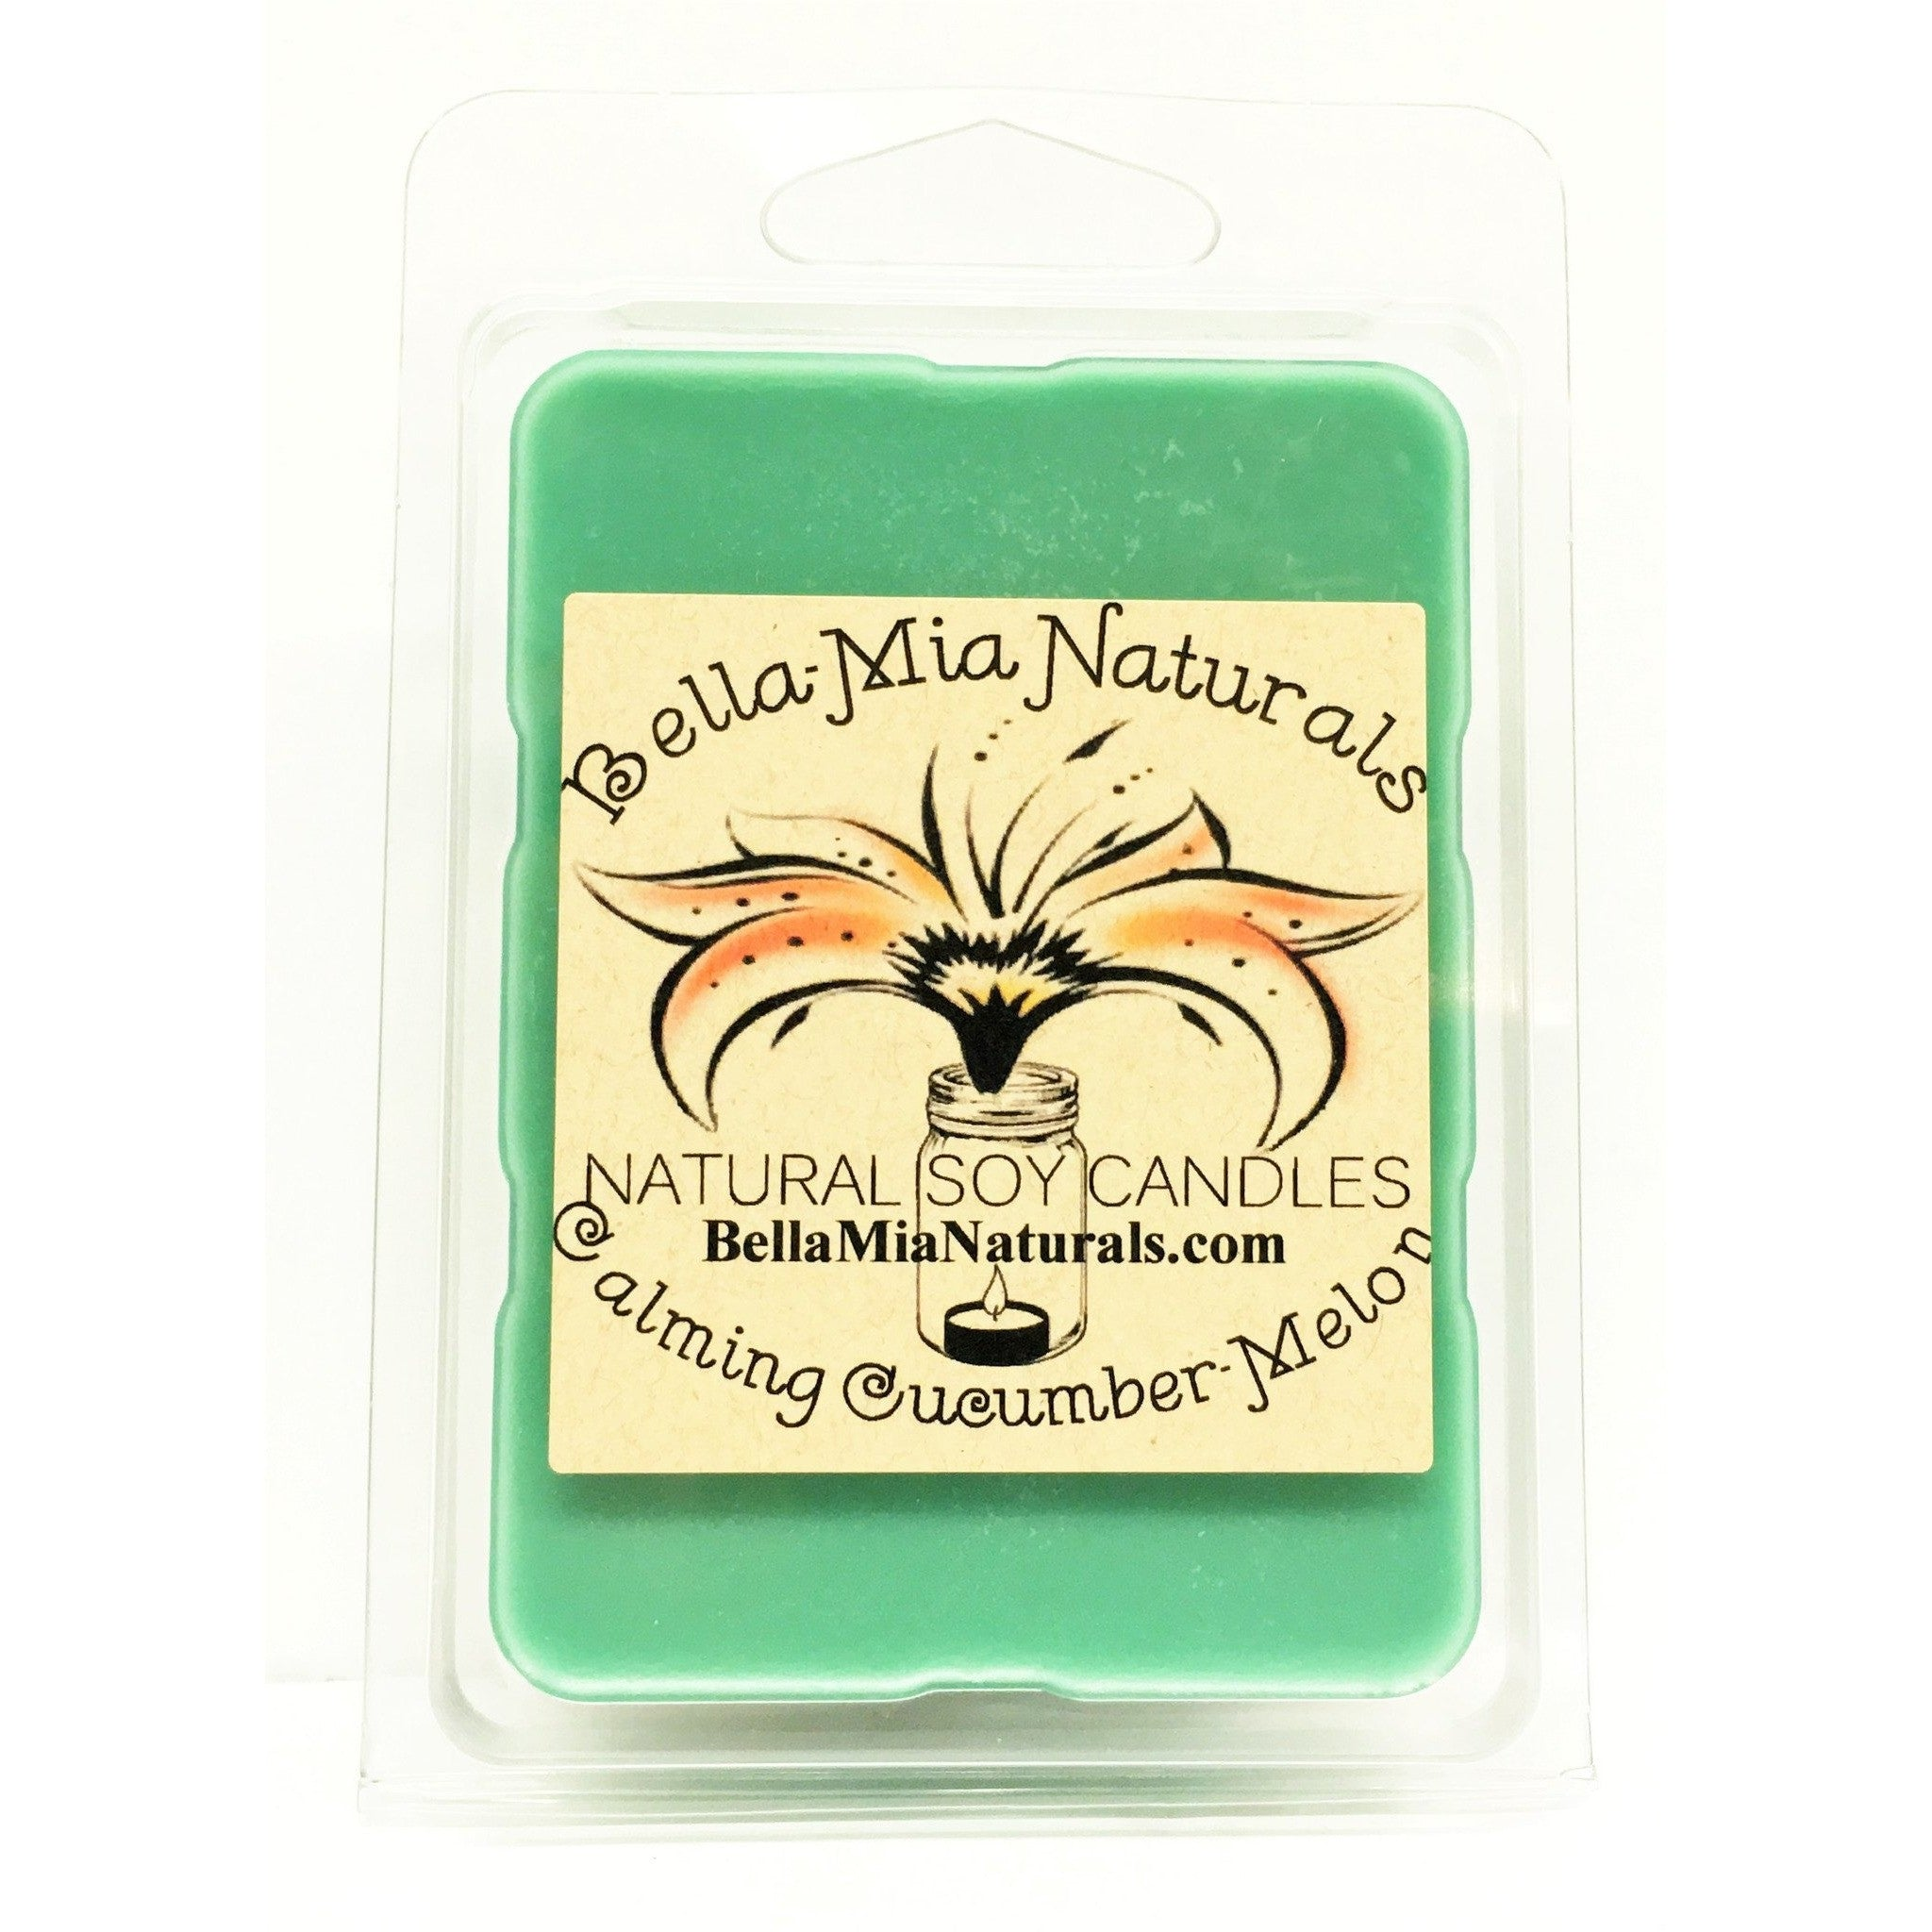 Calming Cucumber-Melon Everyday Natural Soy Candles - Melt-6 Pack - Bella-Mia Naturals All Natural Soy Candles & Lip Balms - 5